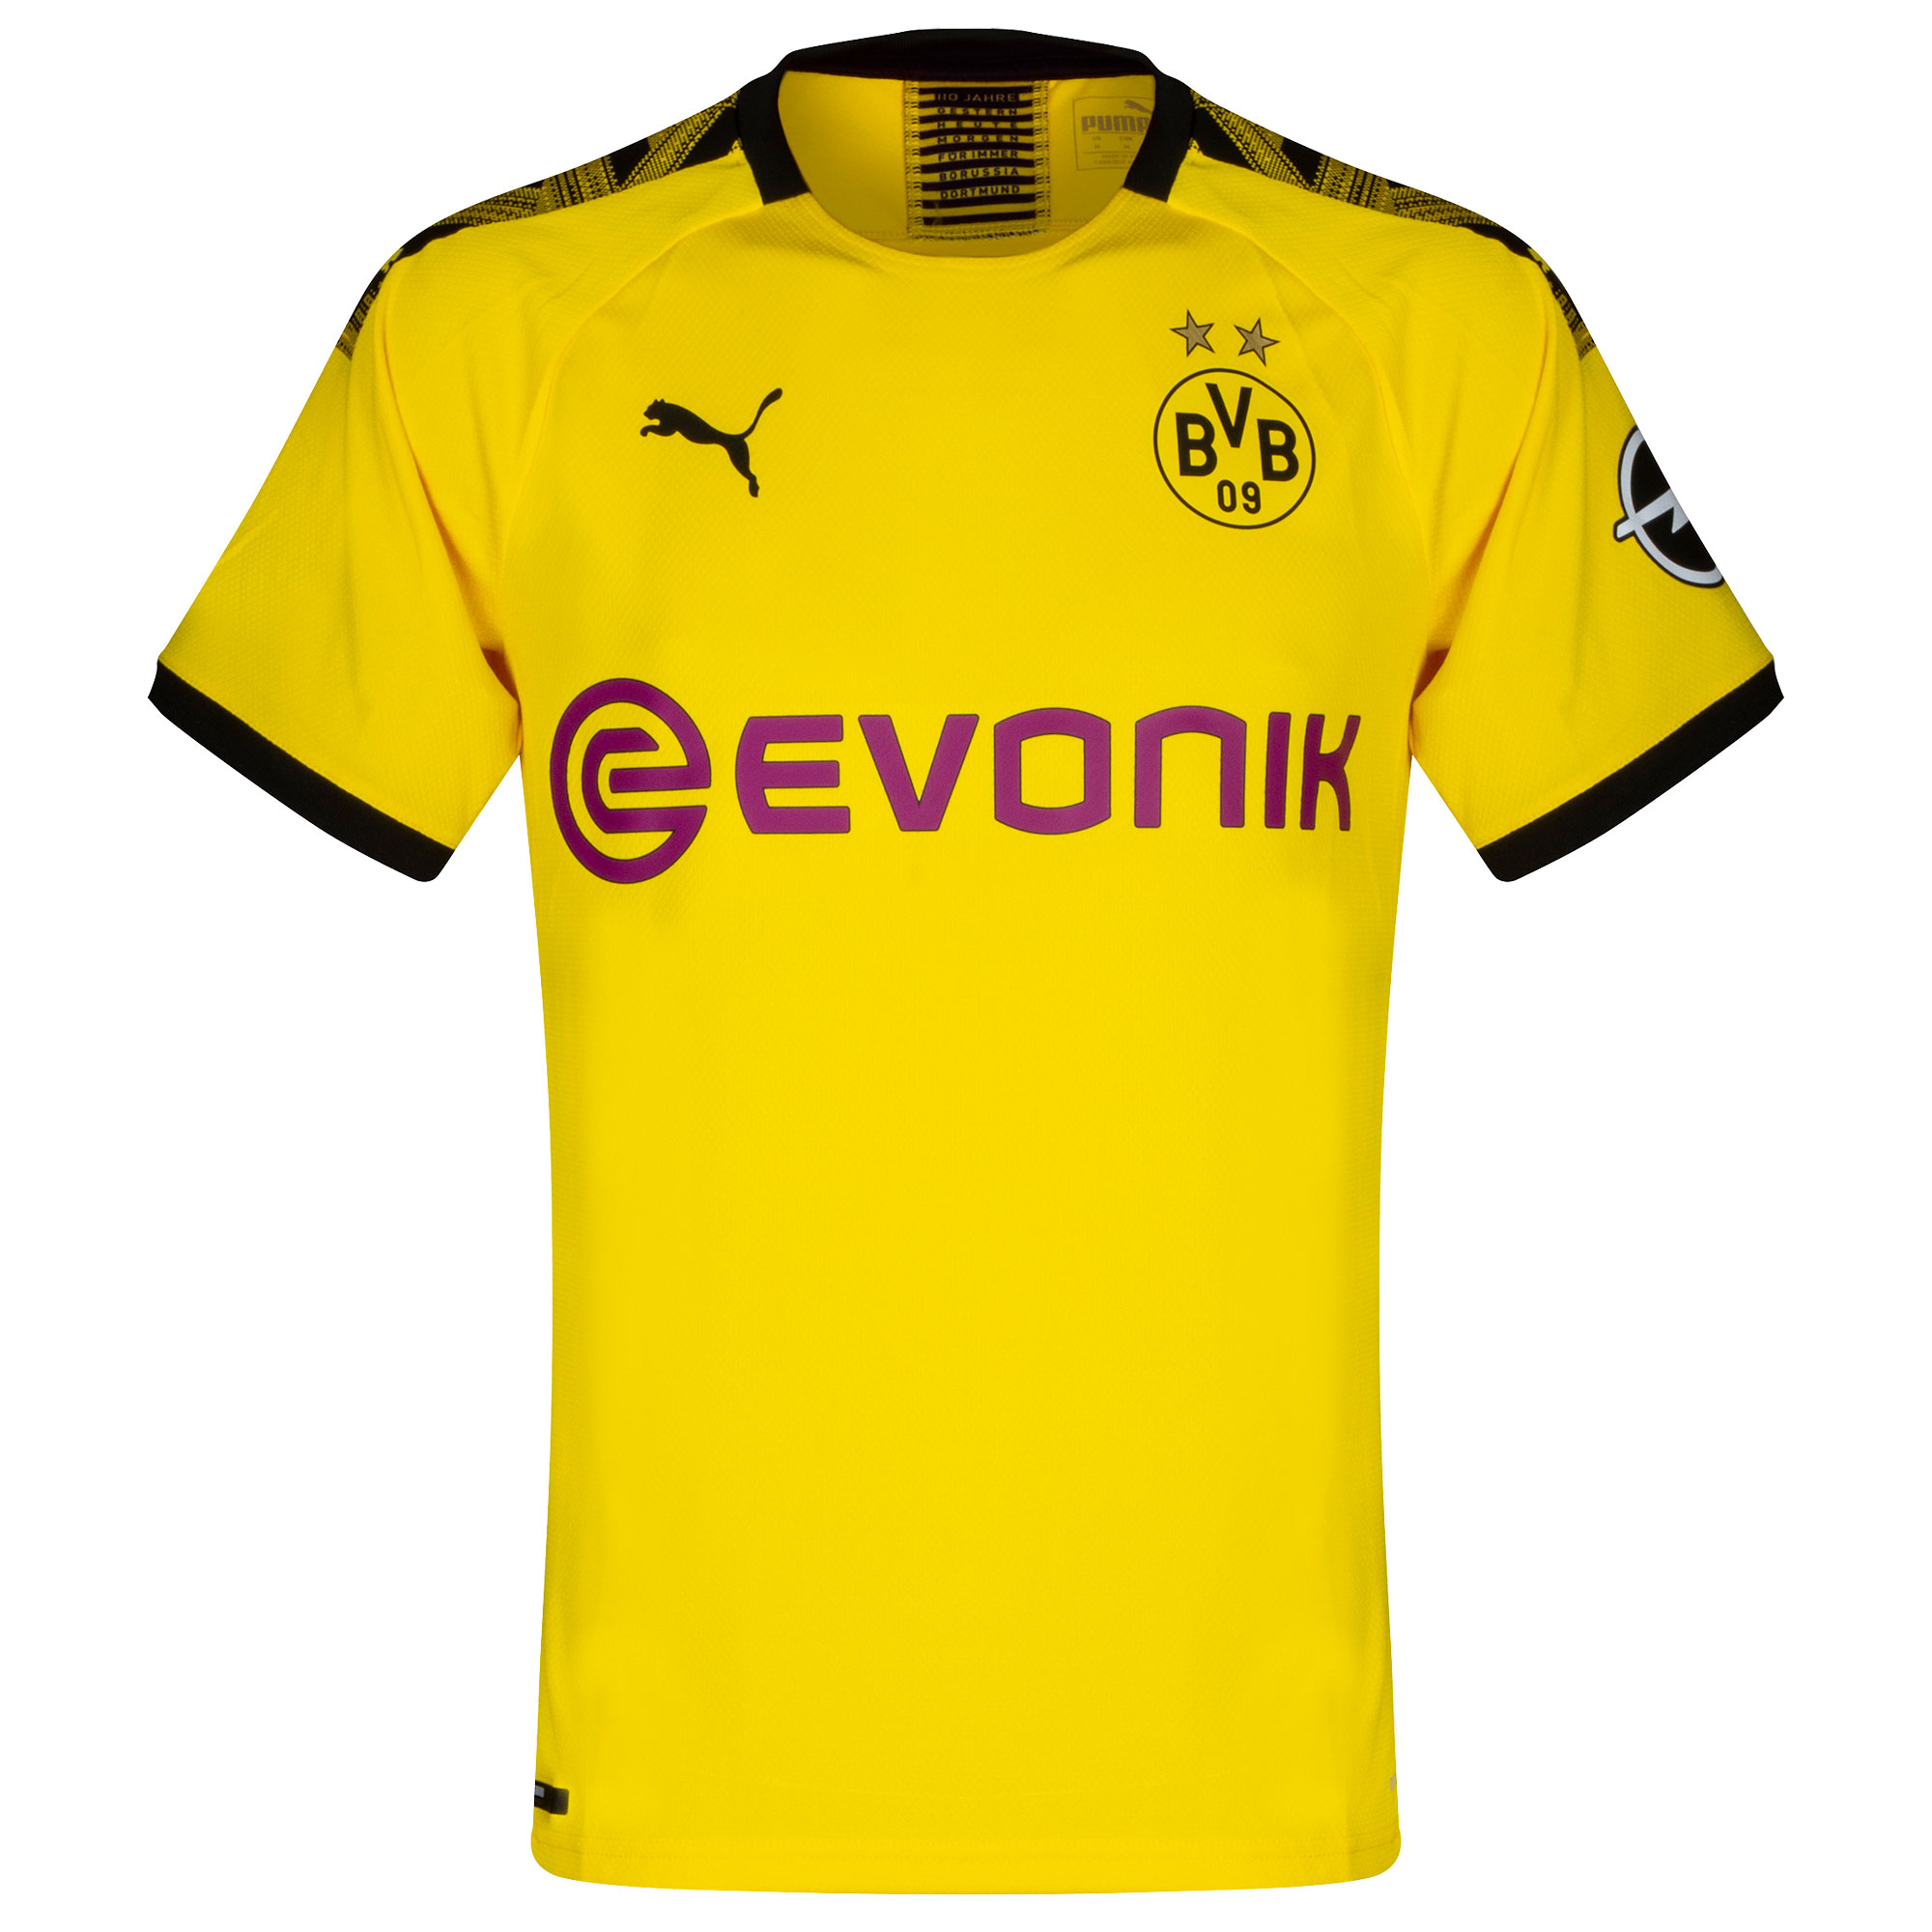 low priced a0944 3b928 Borussia Dortmund Football Kits | BVB Kits | BVB Shirts ...